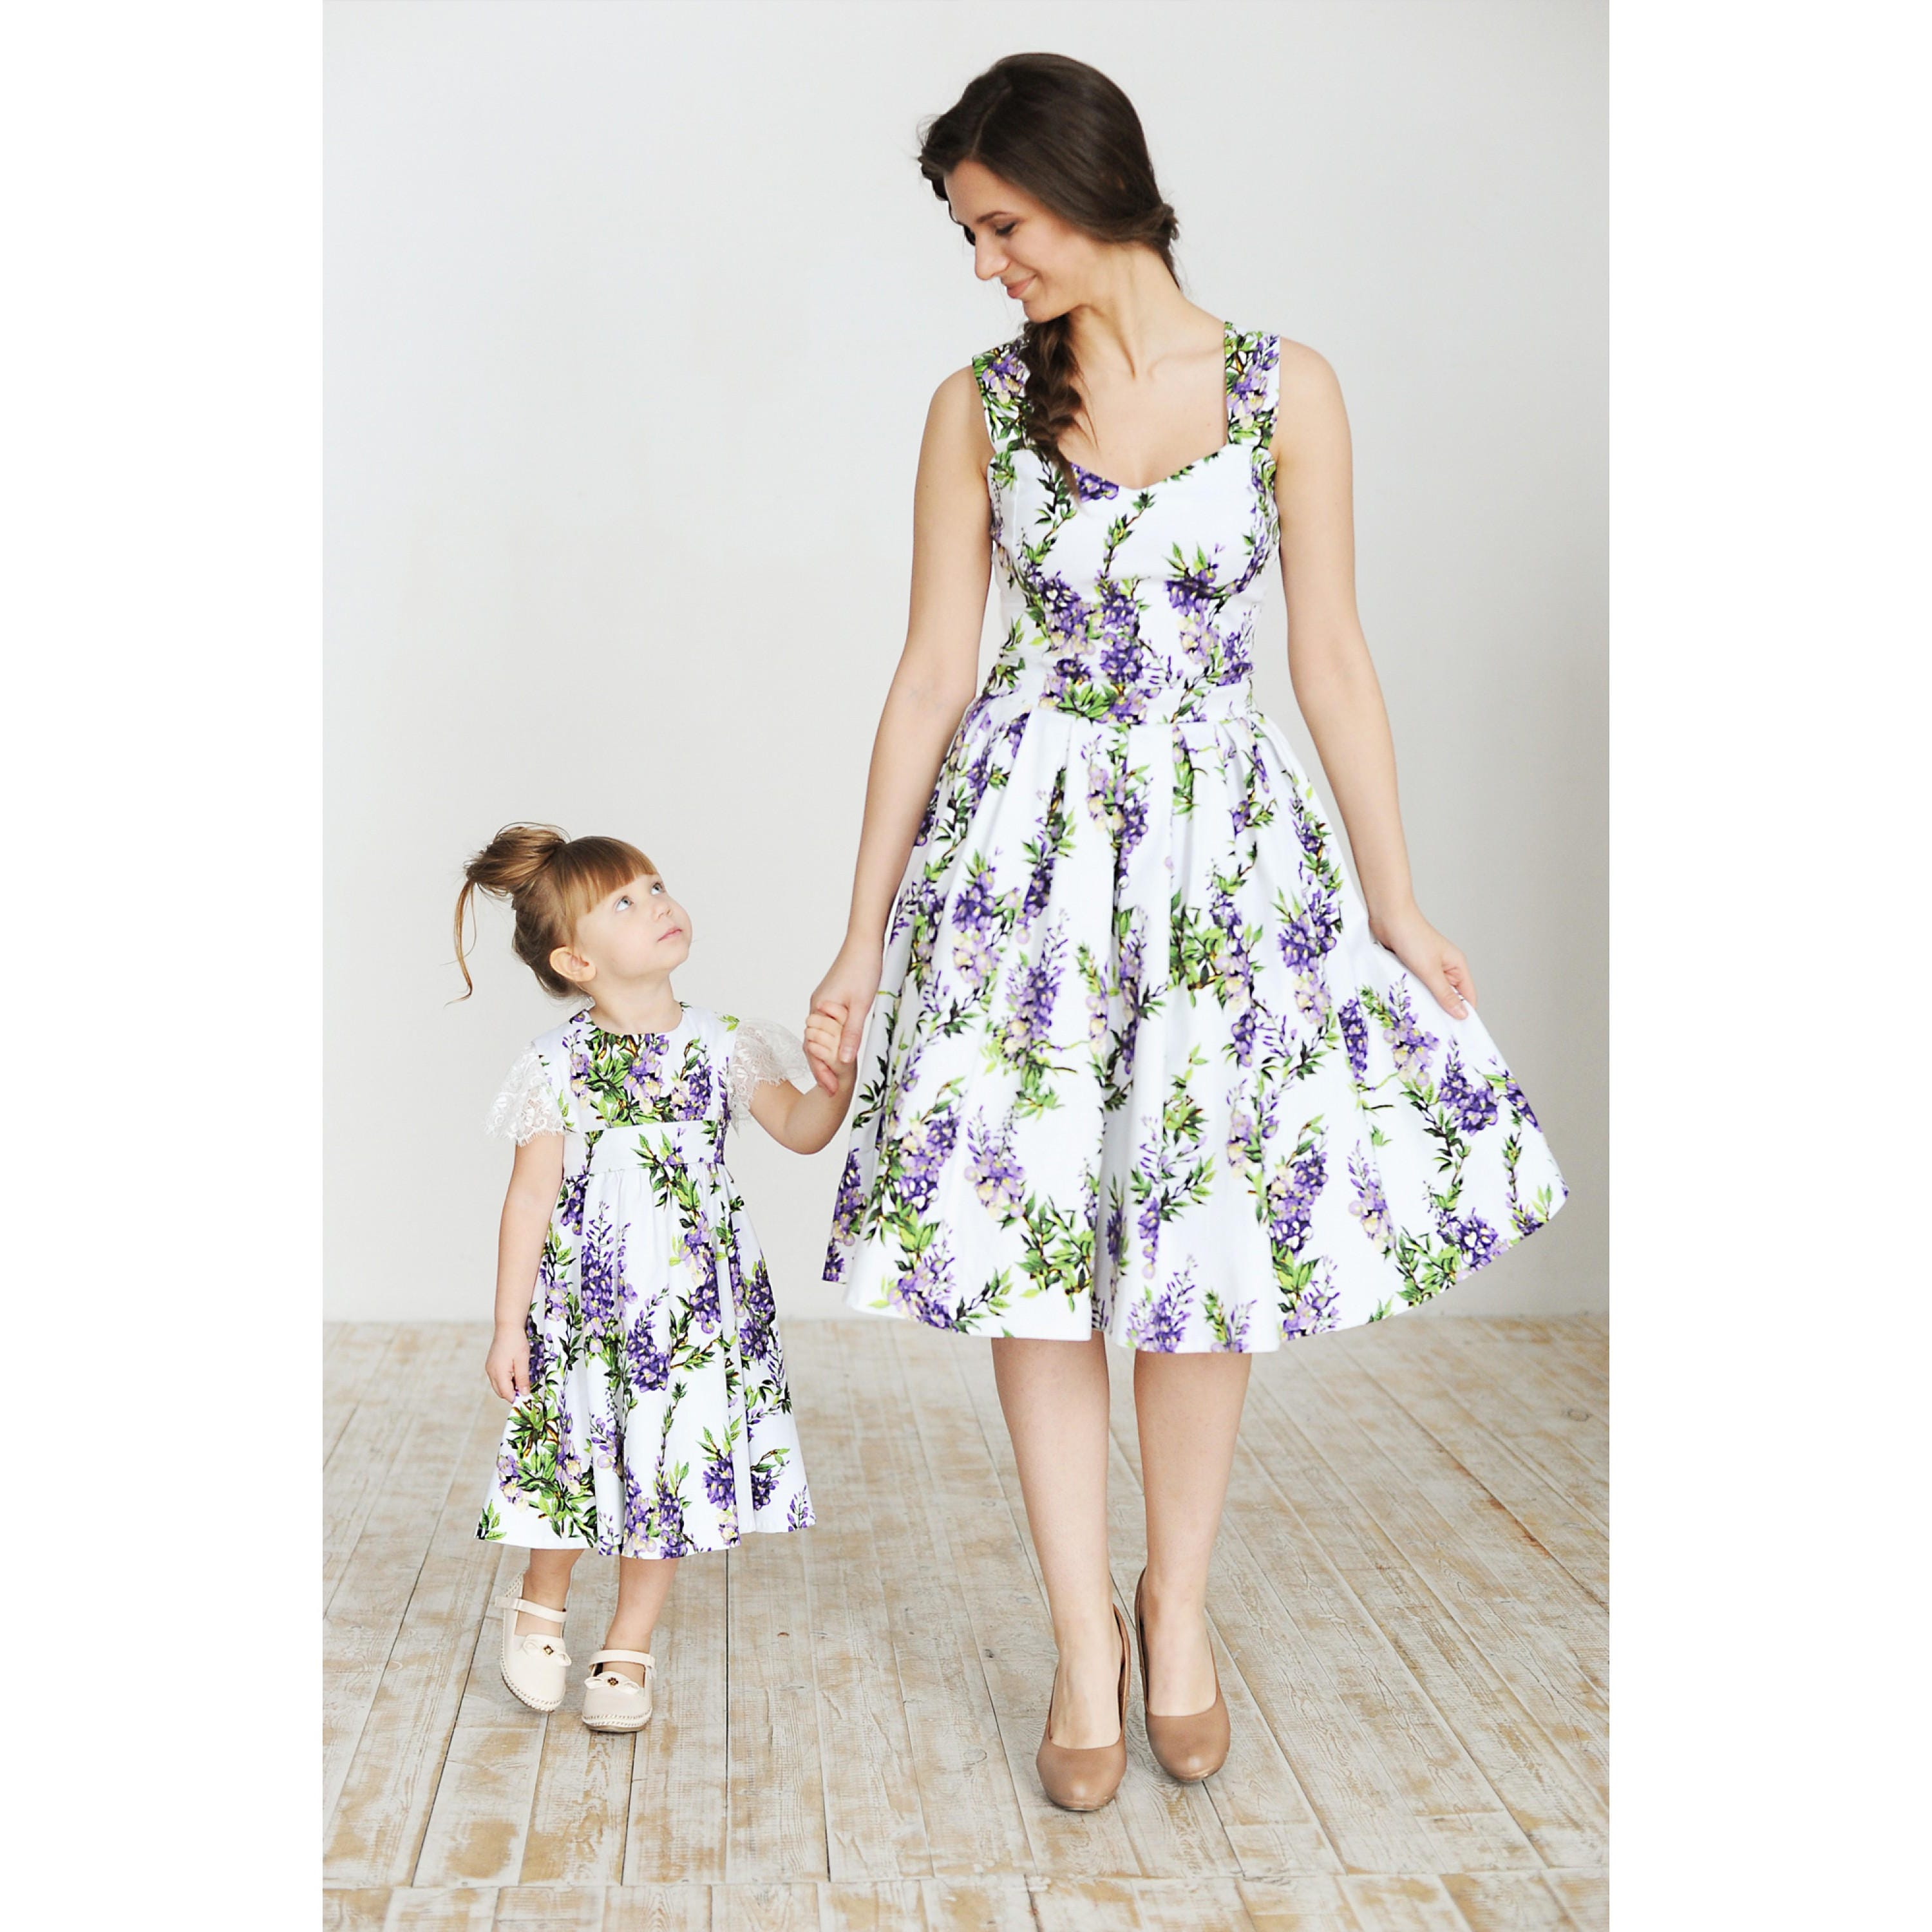 Cotton Mother daughter matching dress with floral print Mom